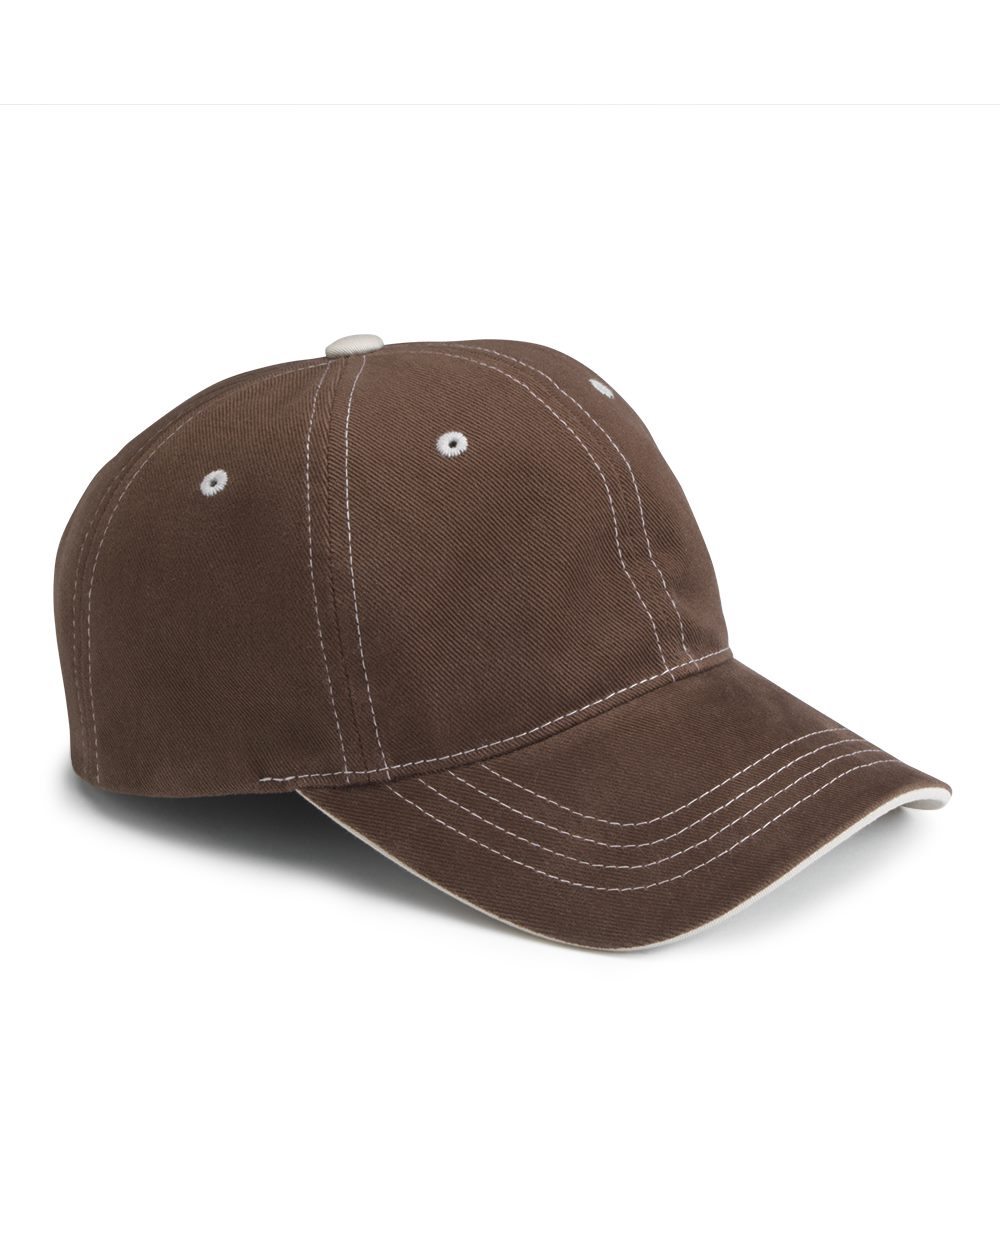 YuPoong 6161 Contrast Color Stitched Cap